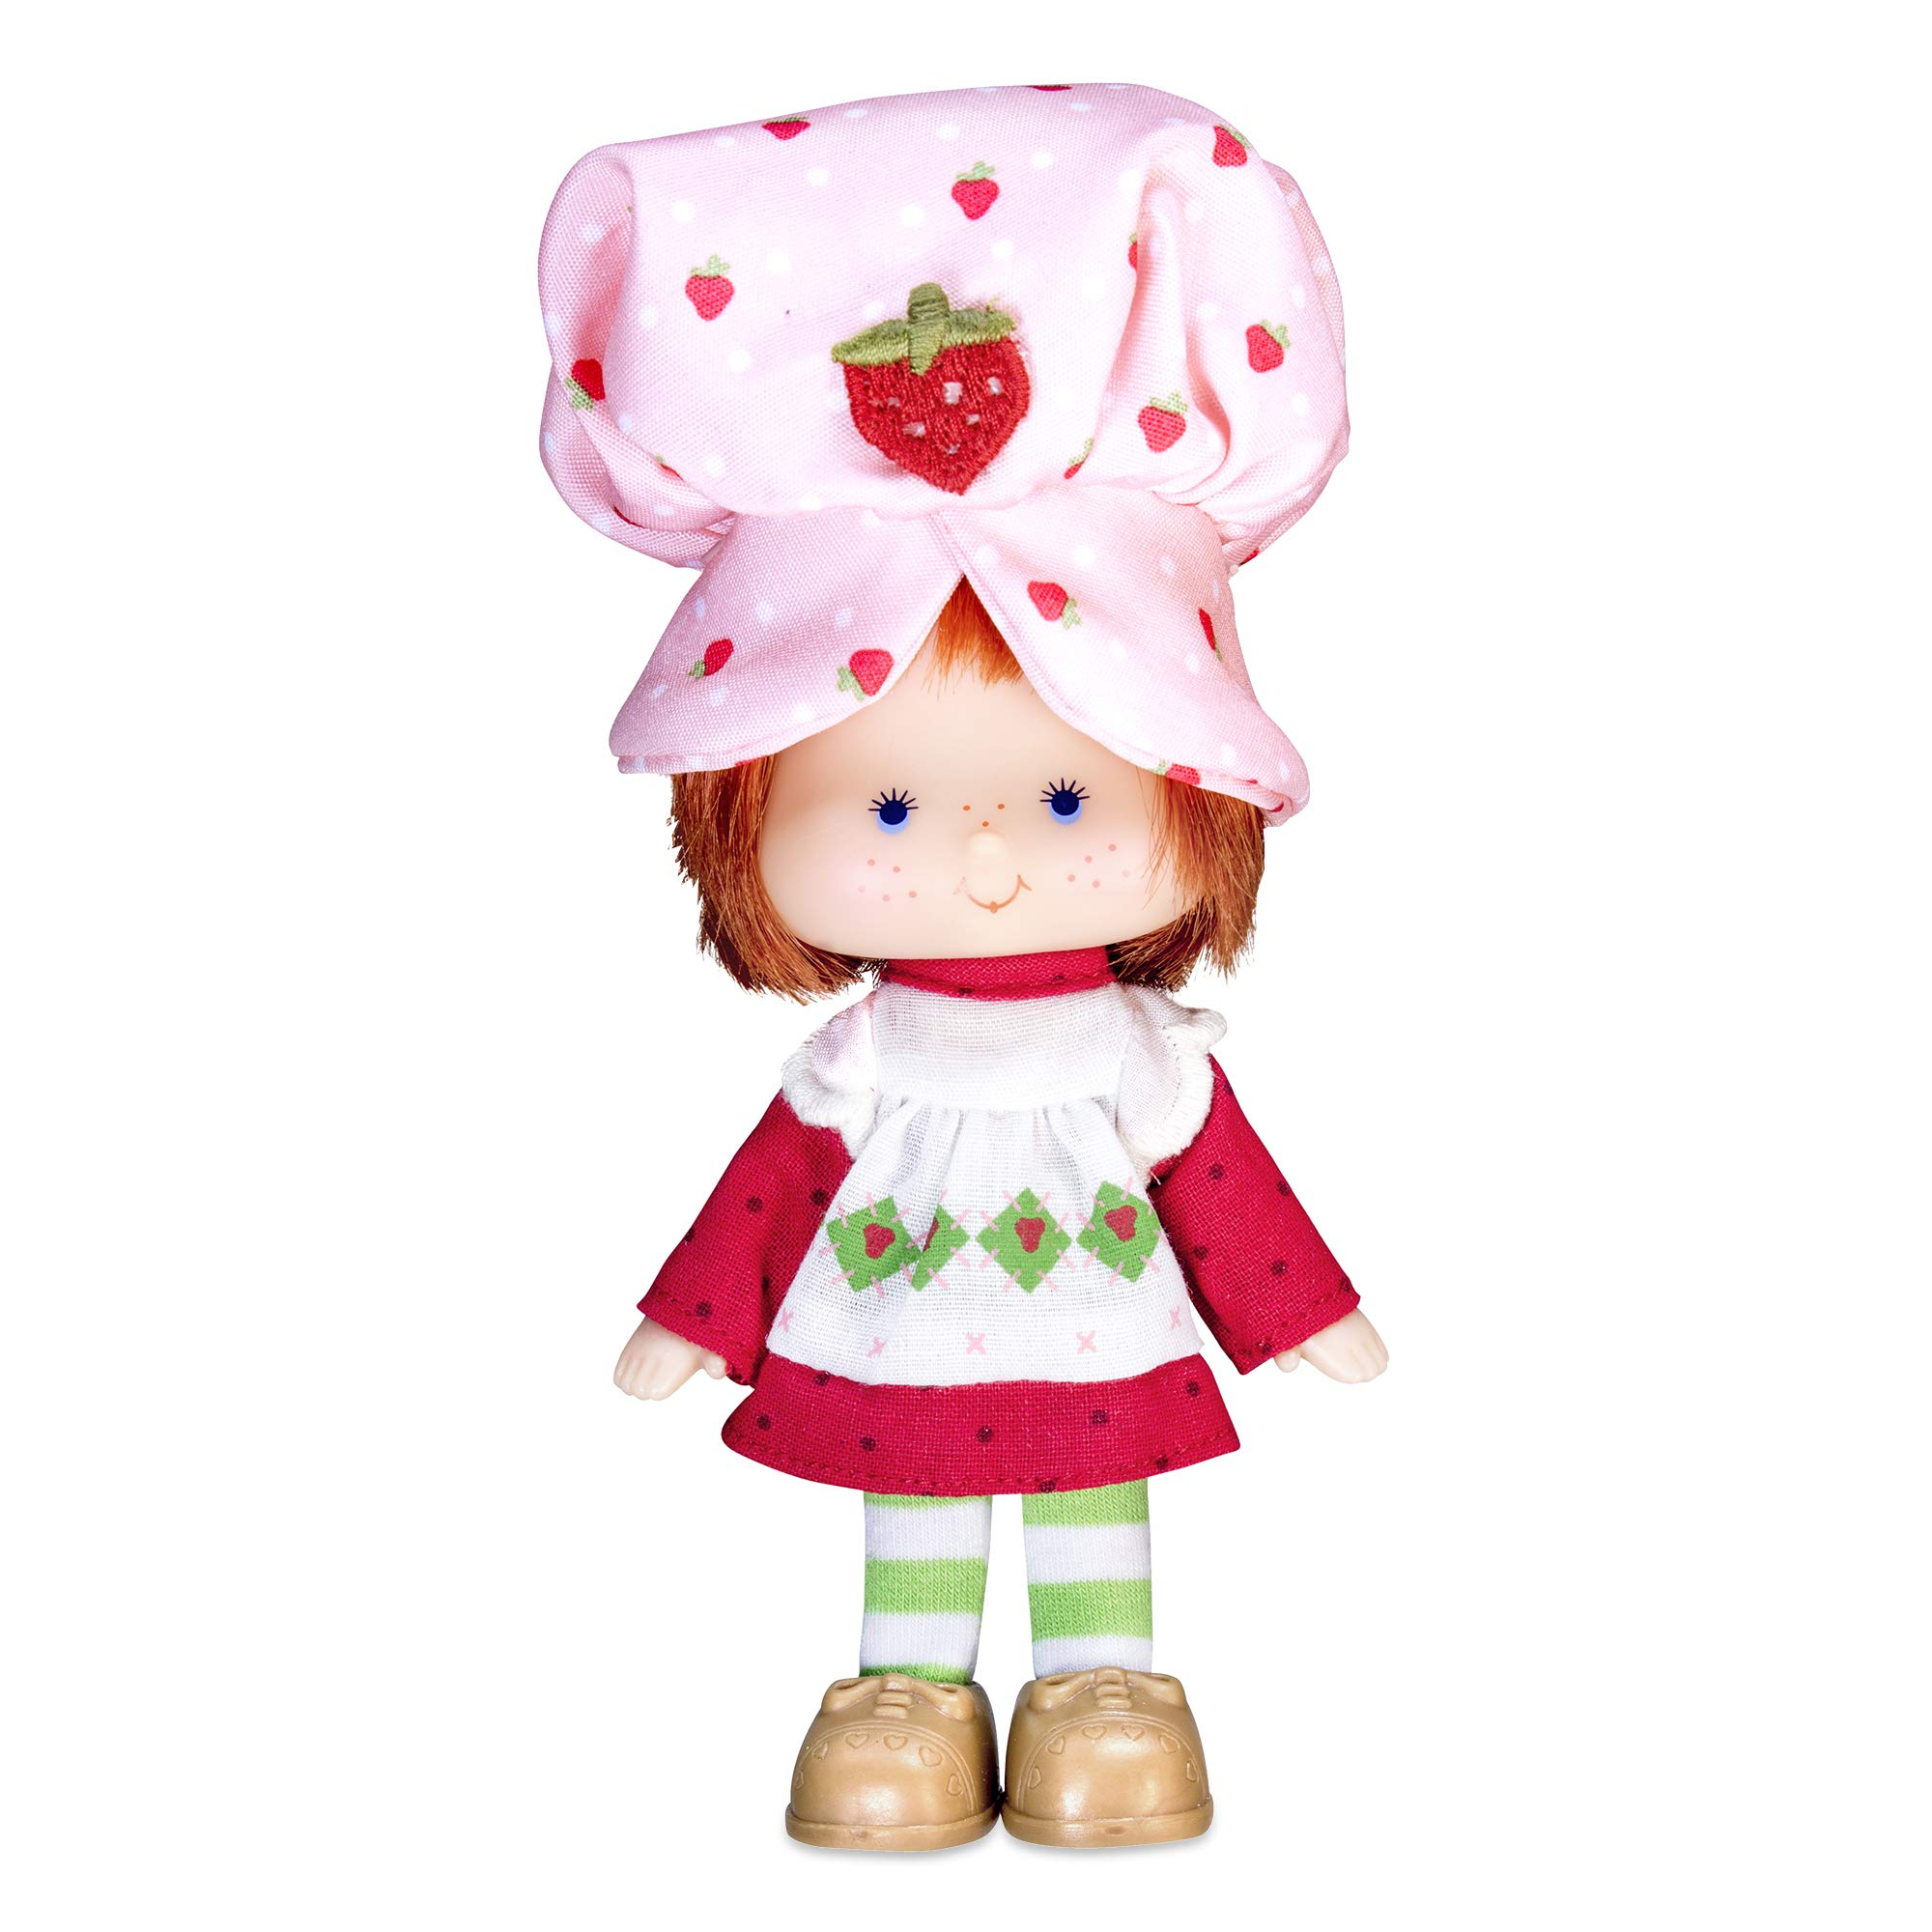 """Strawberry Shortcake Retro Classic Doll, 6"""", for 3 Years Old and Up, Styles May Vary"""